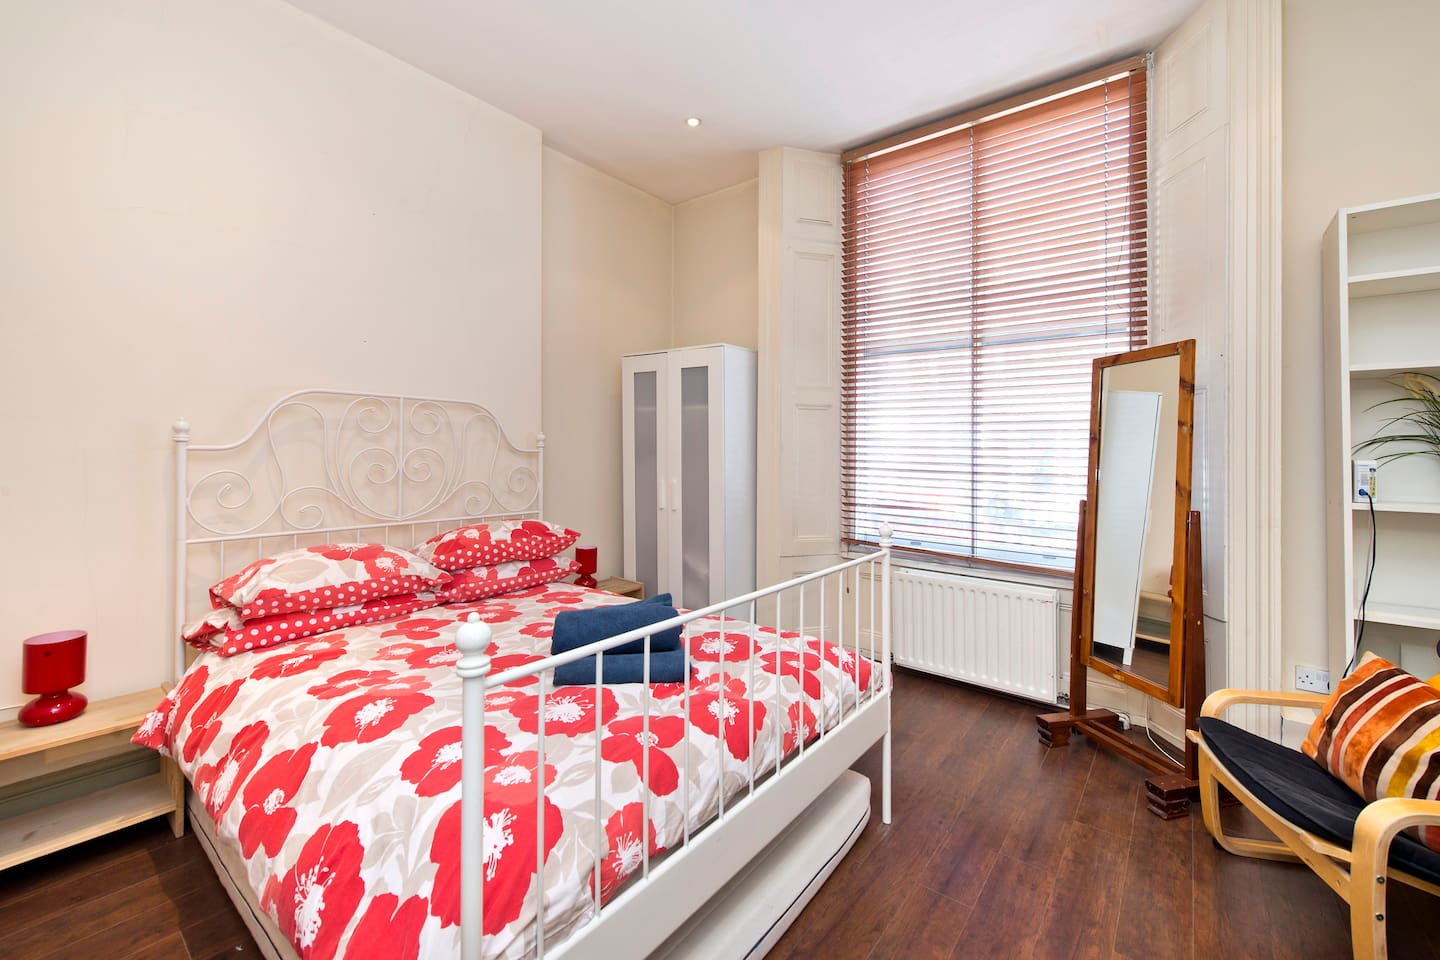 Spacious double room benefiting from hard wood flooring